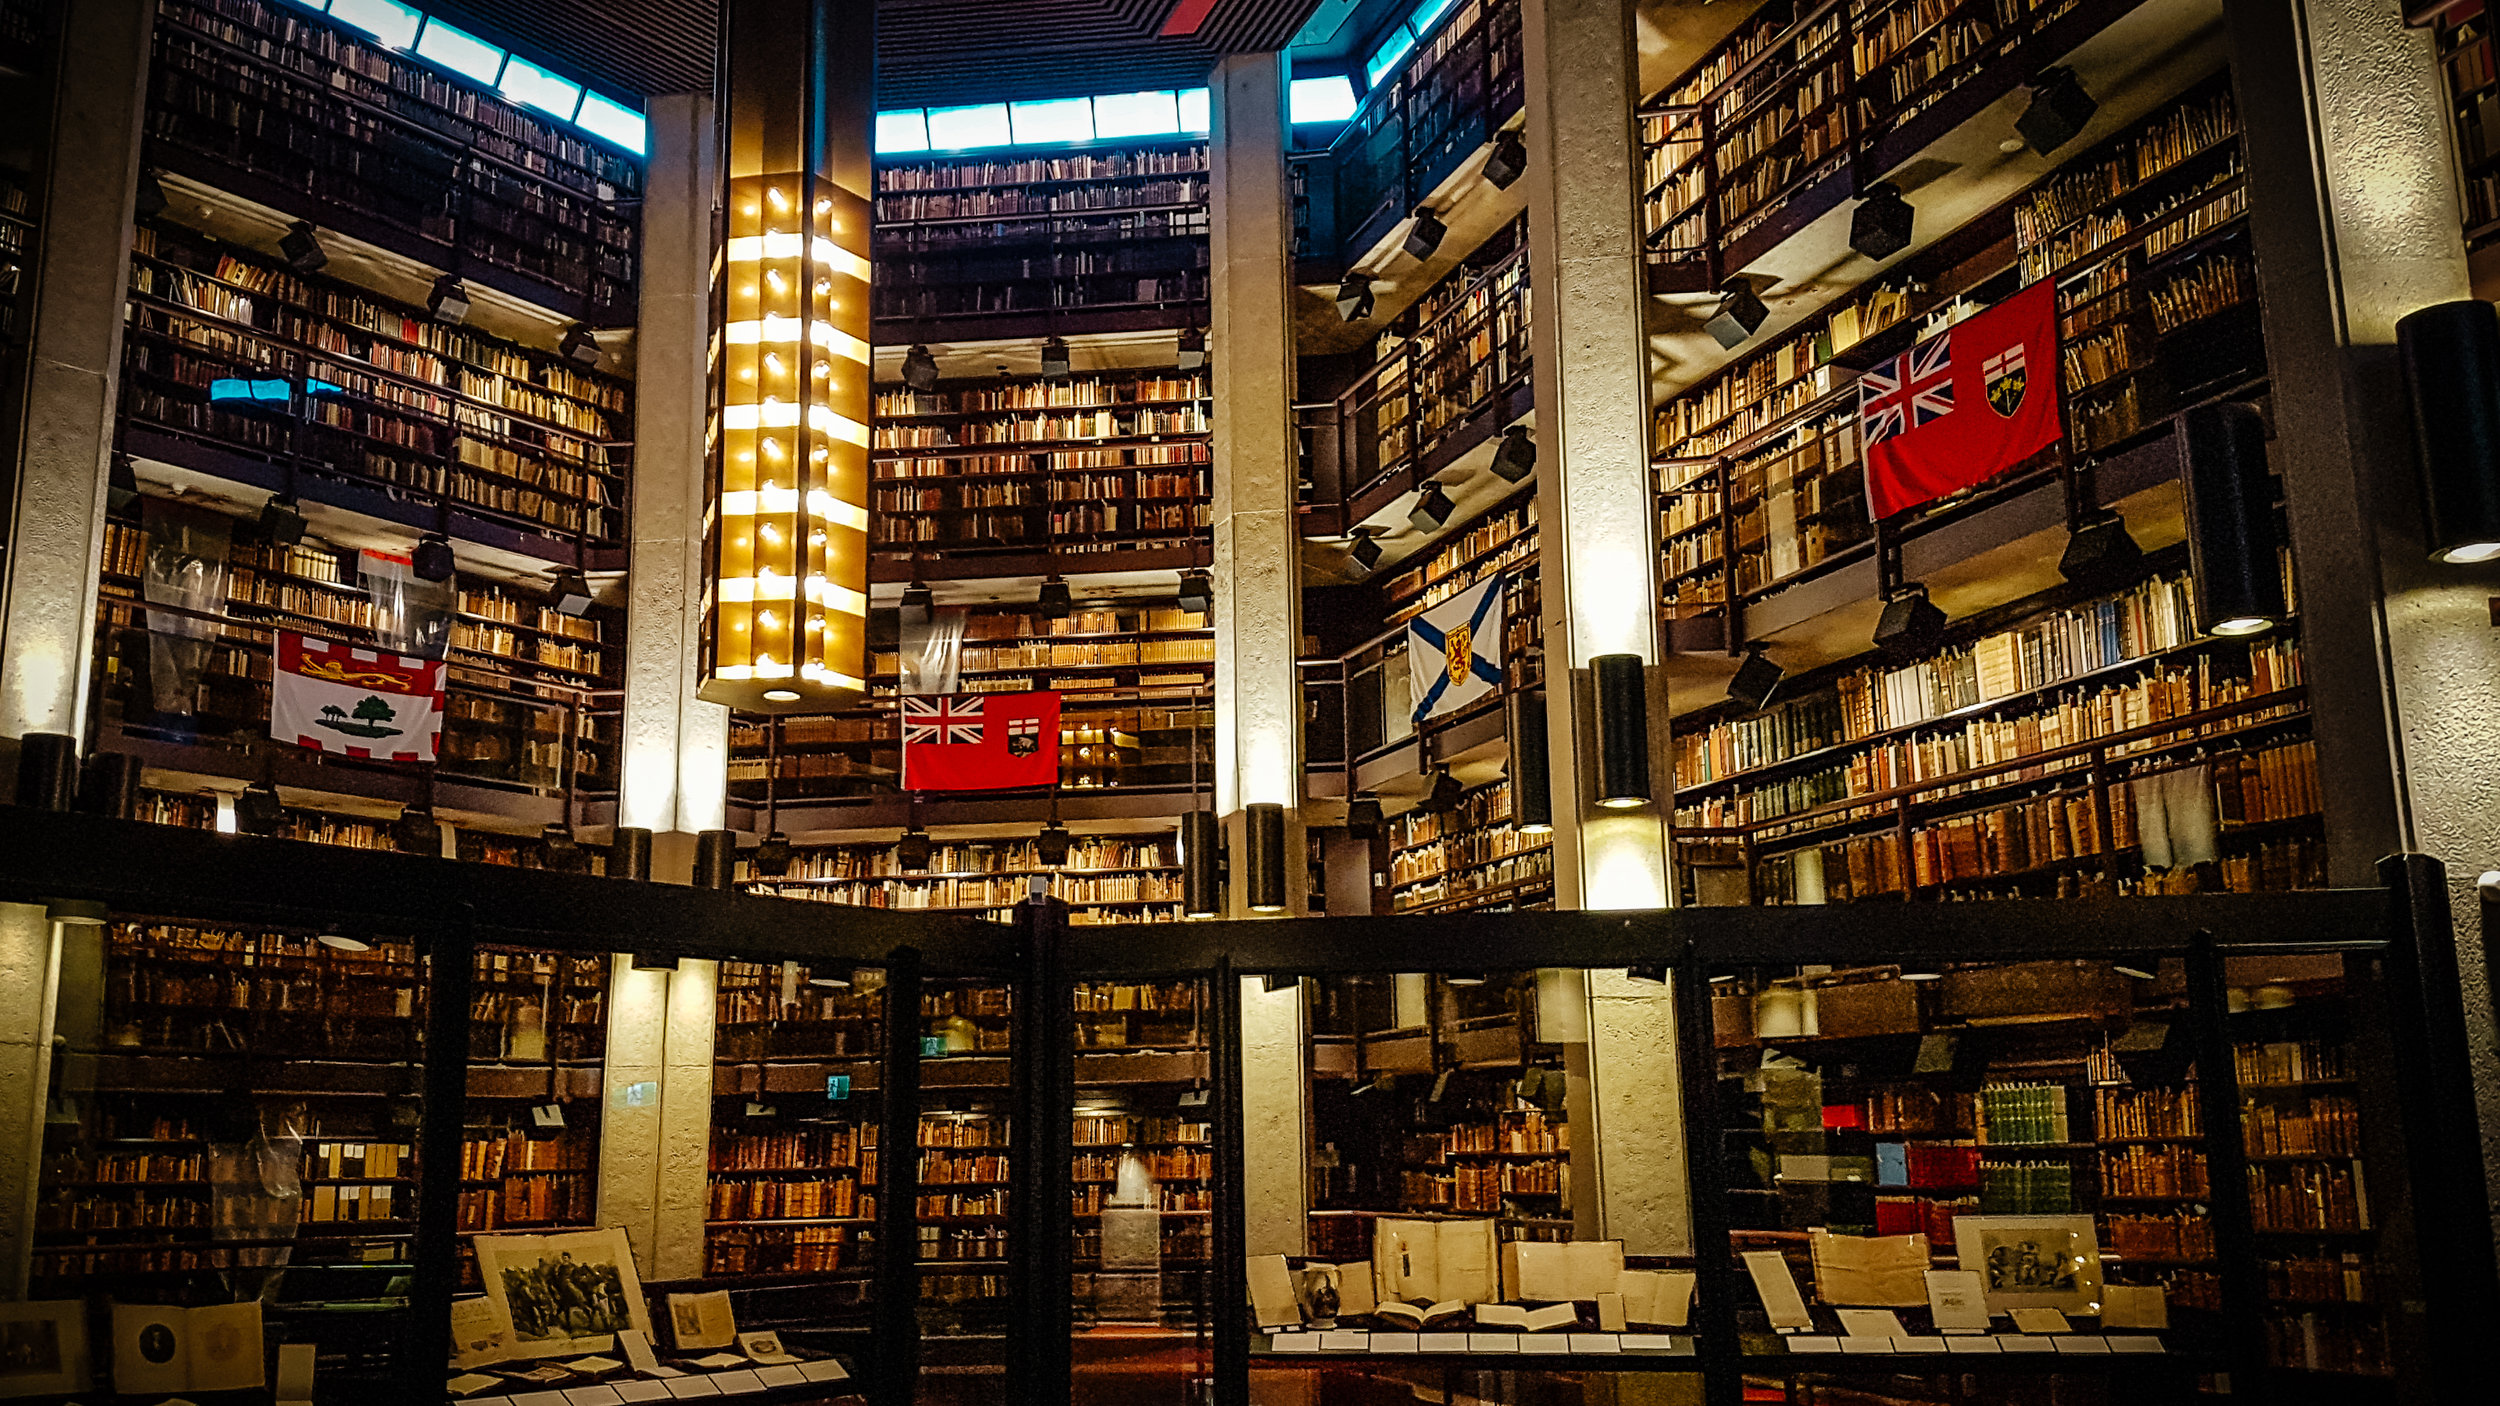 The Thomas Fisher Rare Book library. As a U of T student, I though I'd be able to get better access to the stacks, but alas, that was not tobe. I guess you need a special membership?